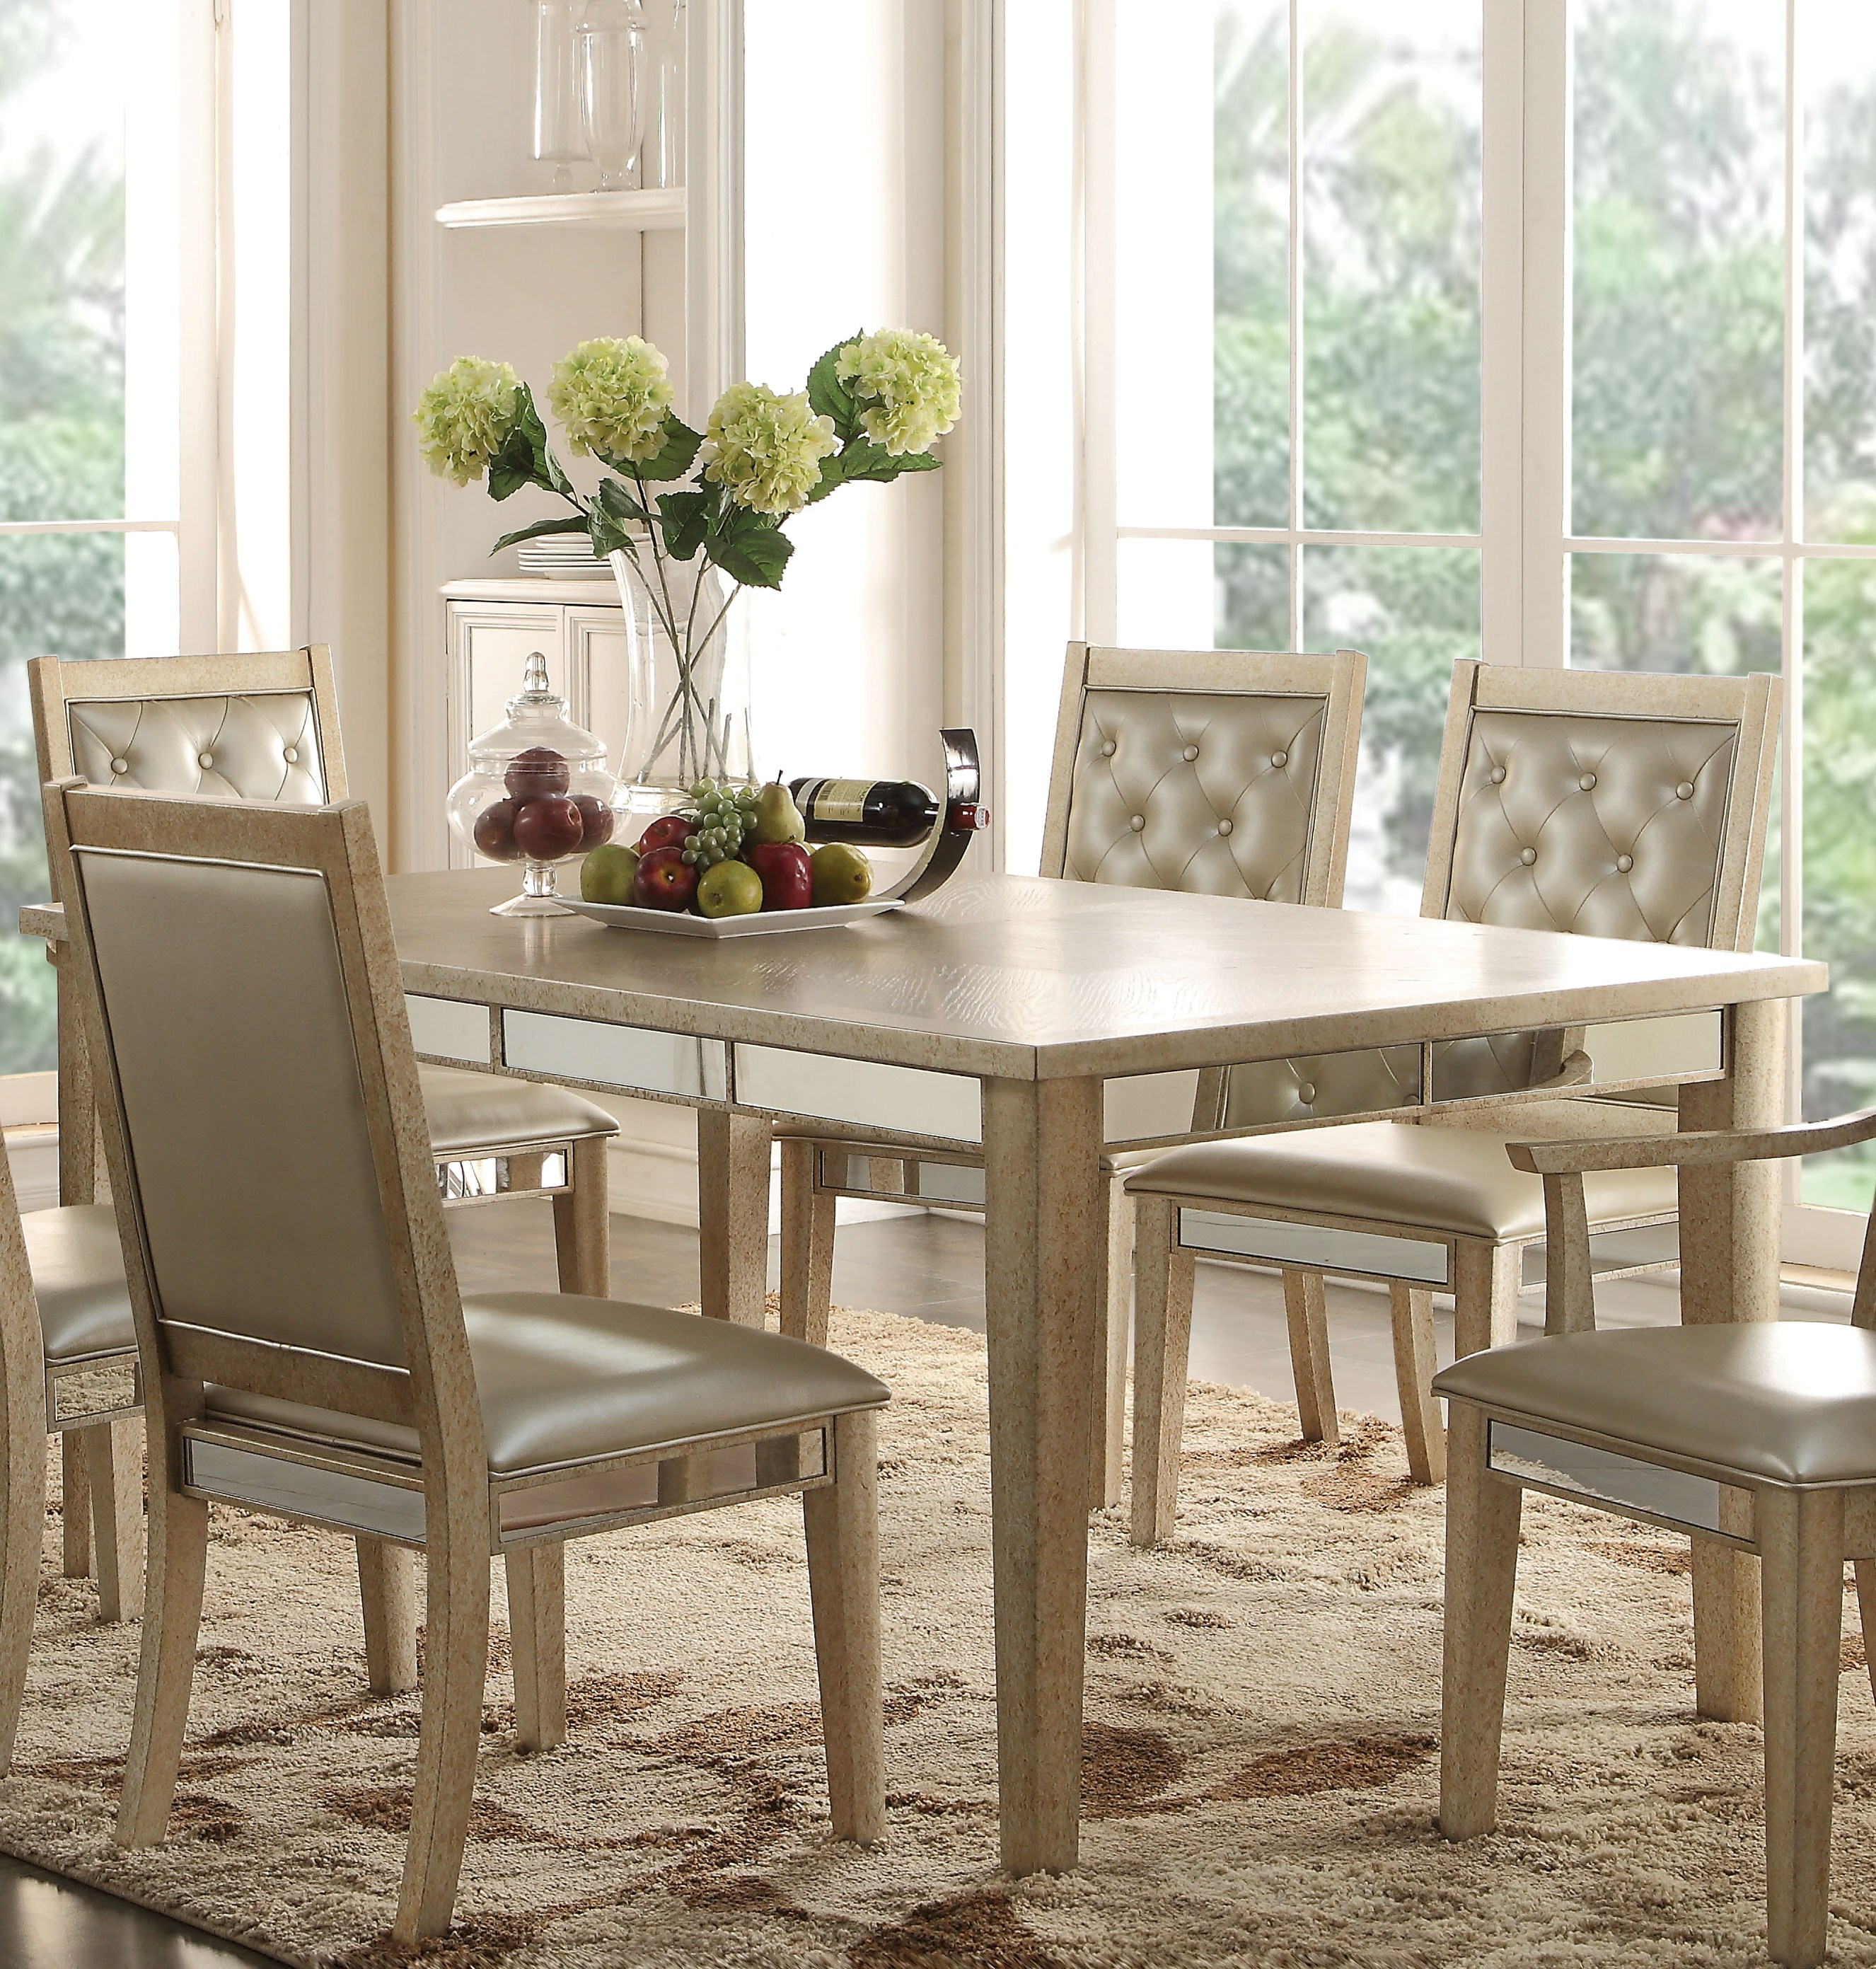 acme furniture voeville antique white dining table the classy home. Black Bedroom Furniture Sets. Home Design Ideas